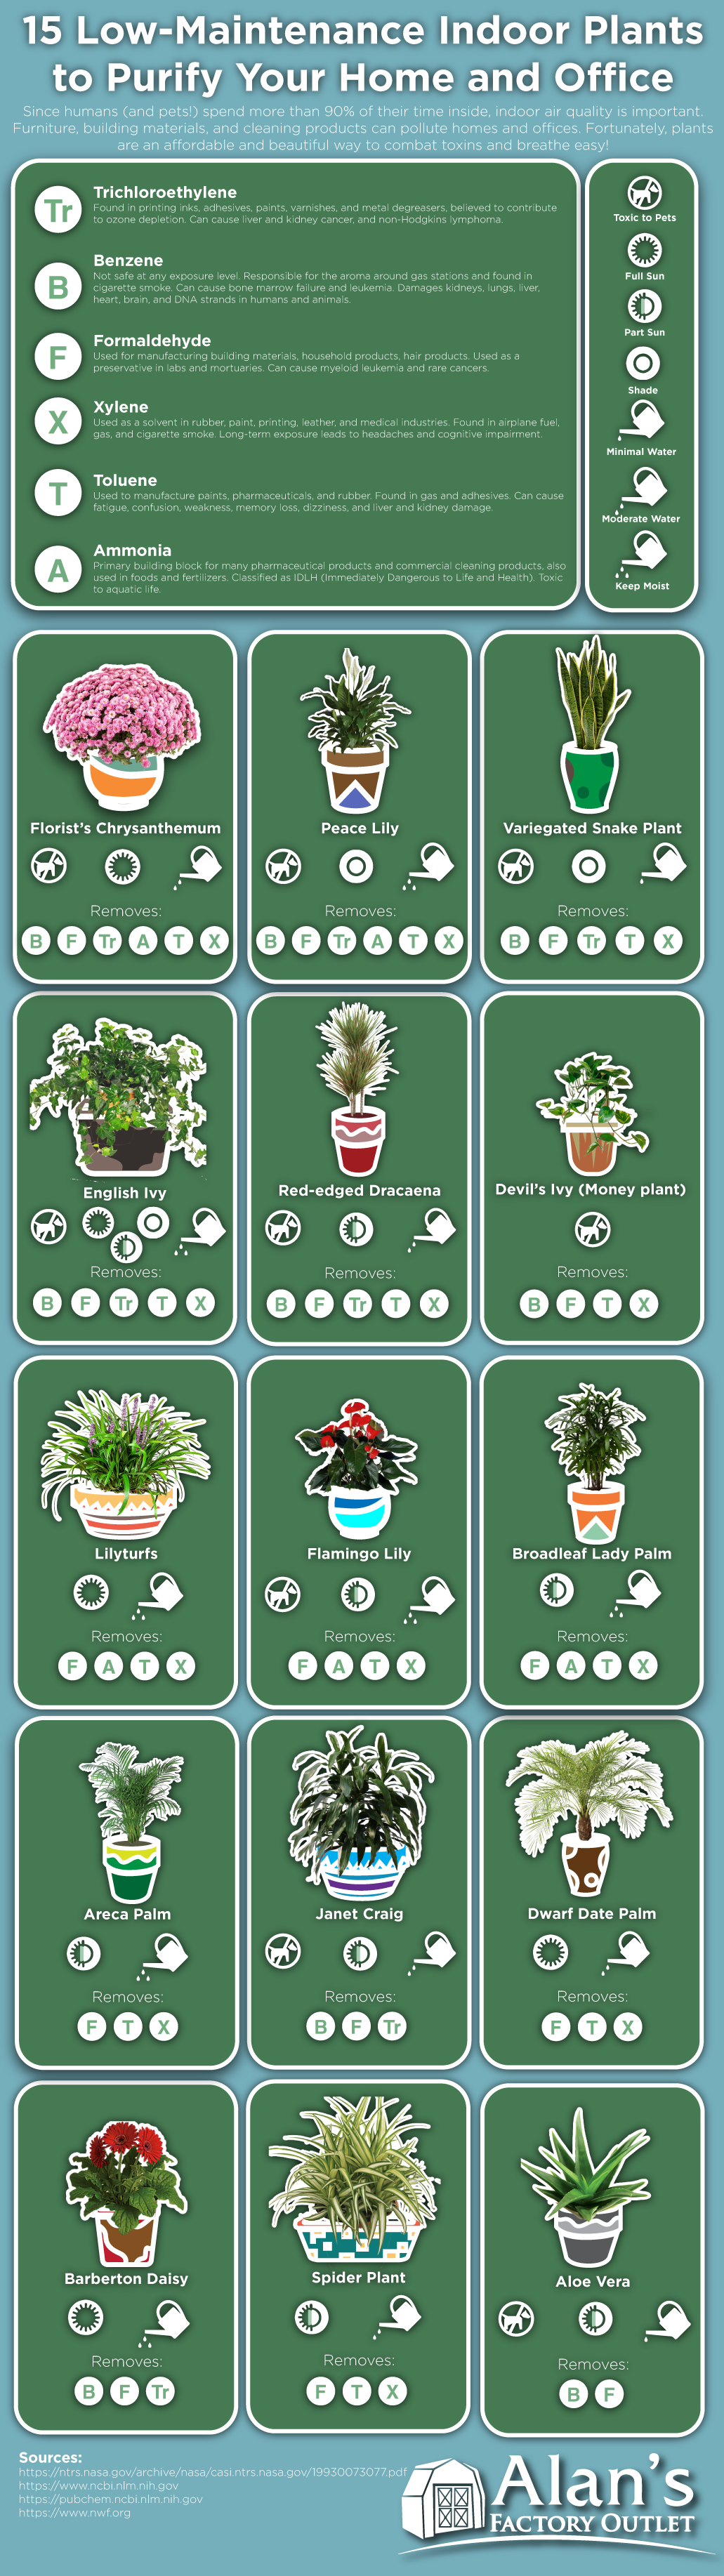 Plants that Purify: 15 Indoor Plants that Clean the Air at Home or Office - Infographic